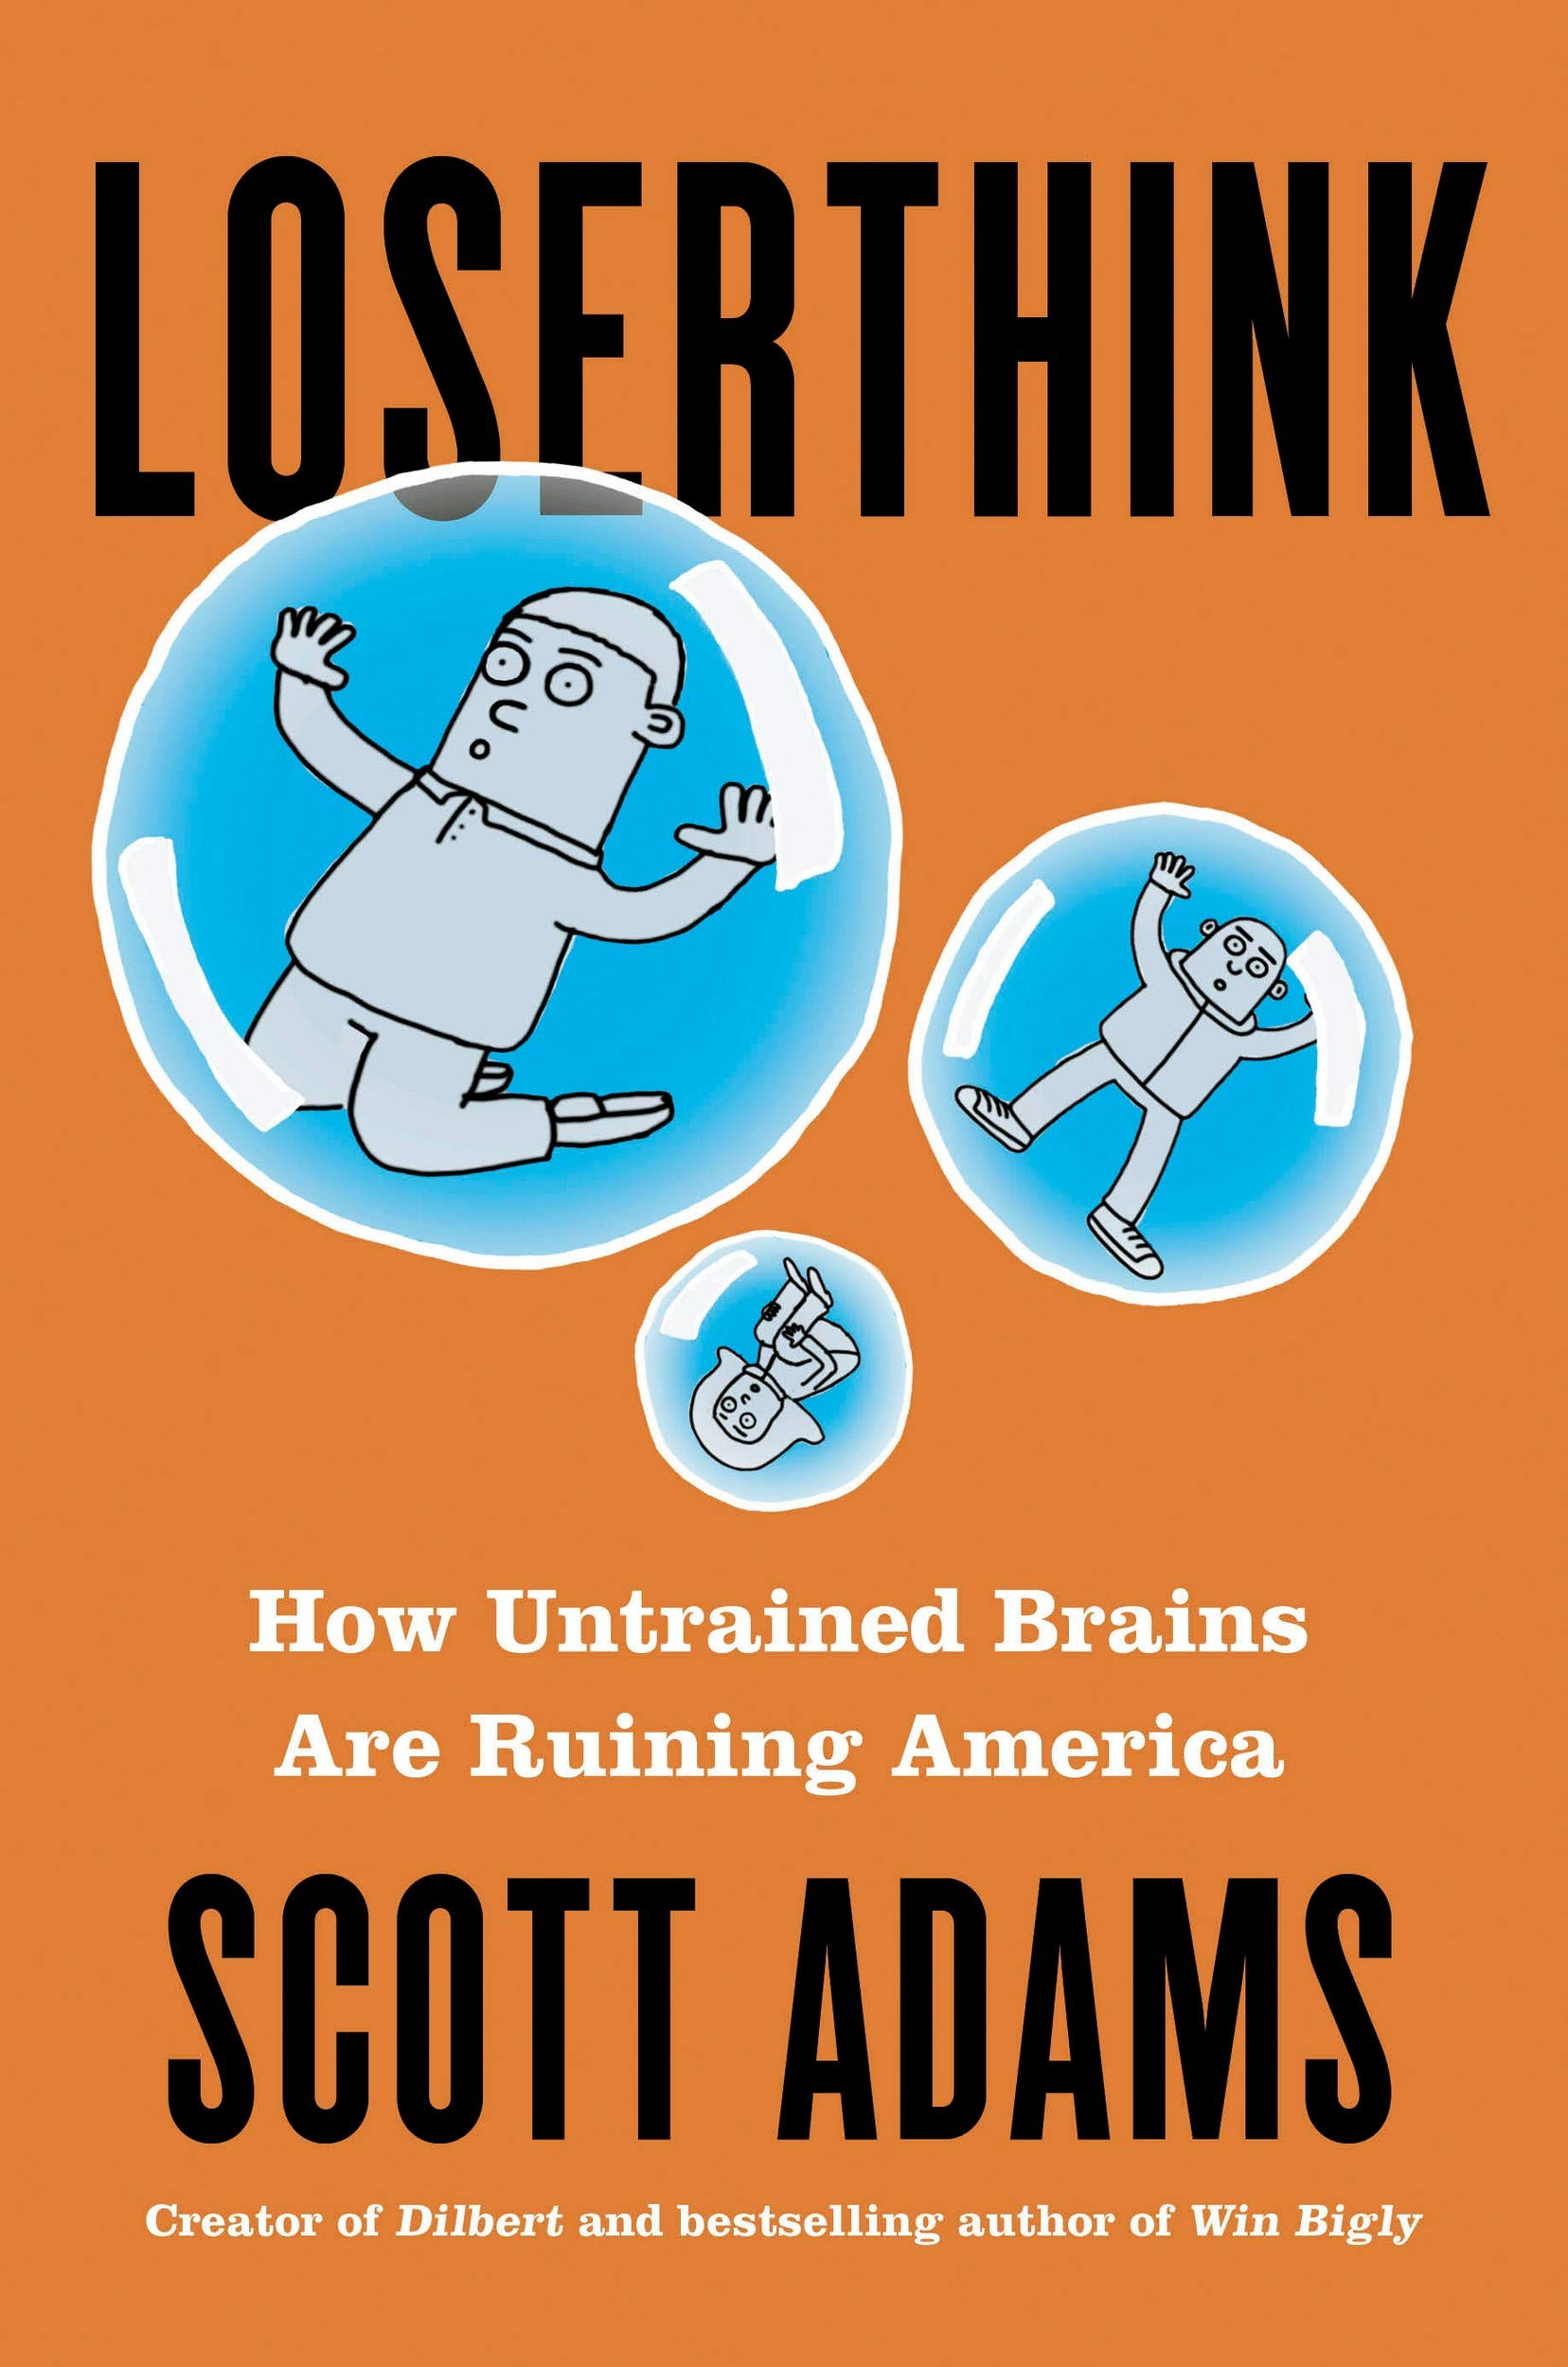 Loserthink: How Untrained Brains Are Ruining America by Portfolio